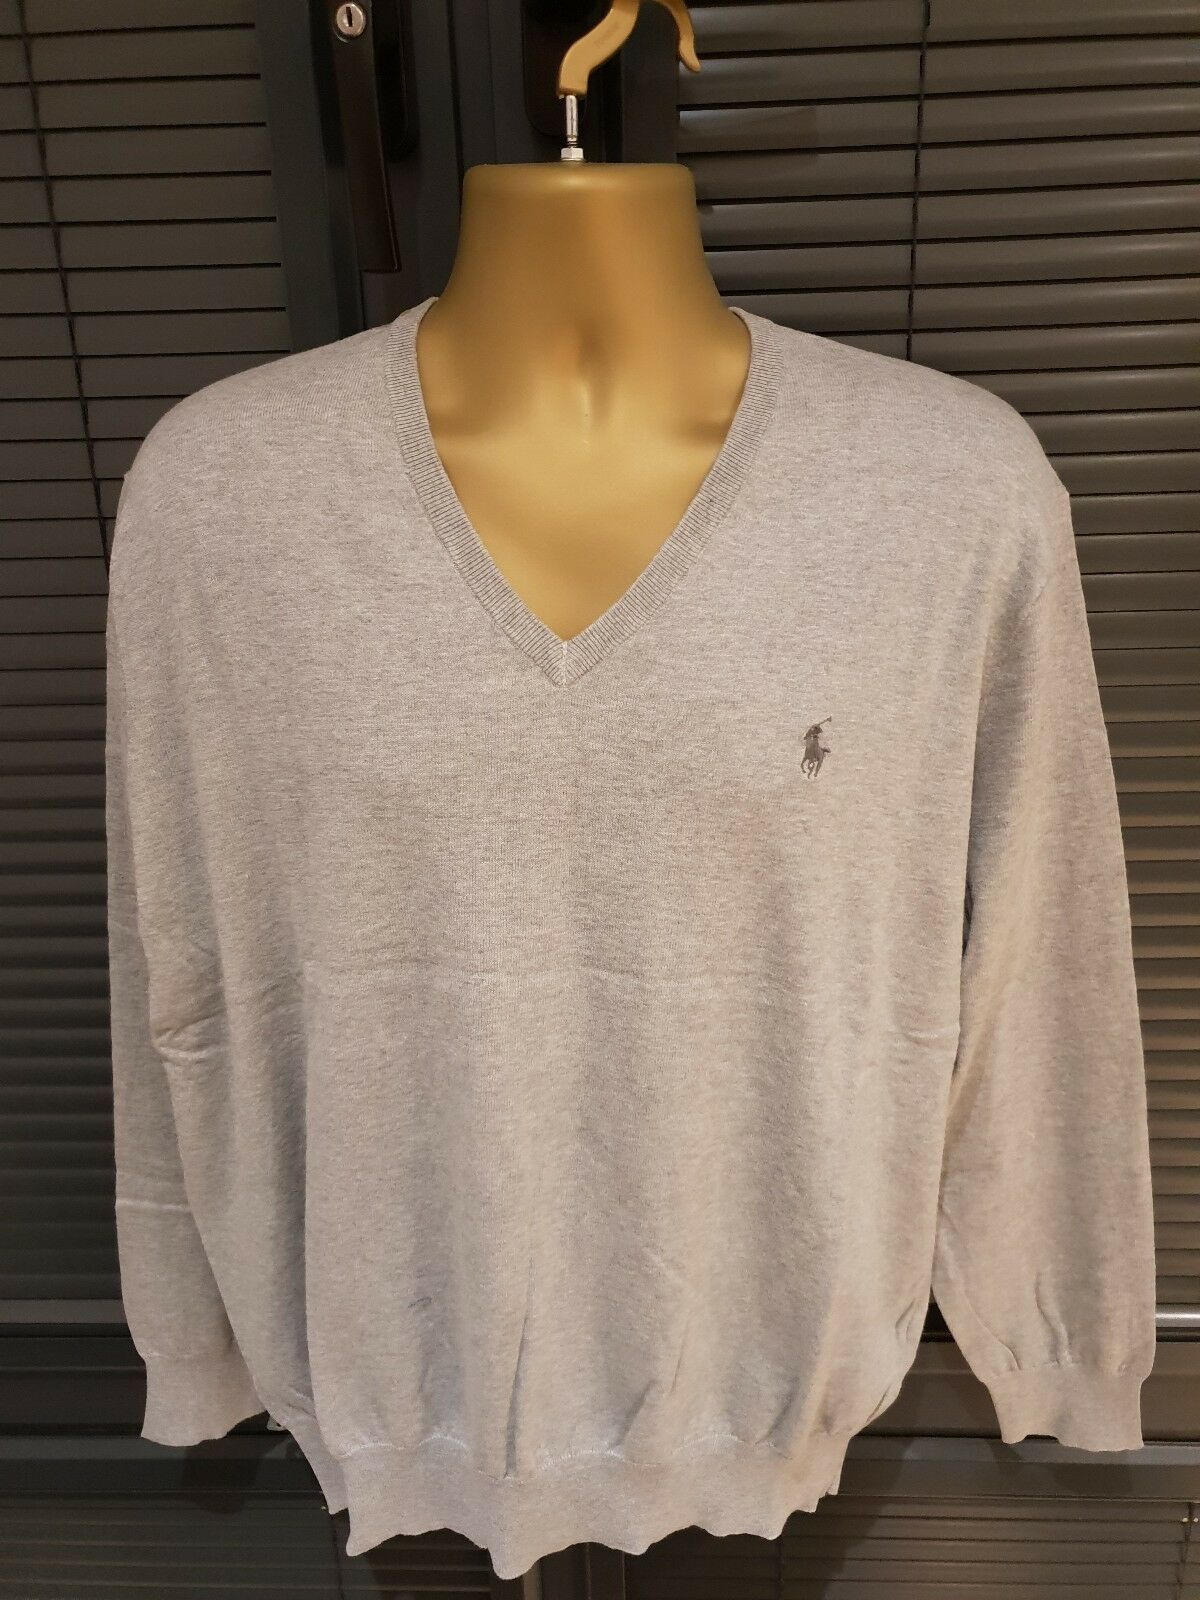 Polo Ralph Lauren Mens Unique Quality Jumper Top Grey 1XB ONLY   WOW GENUINE